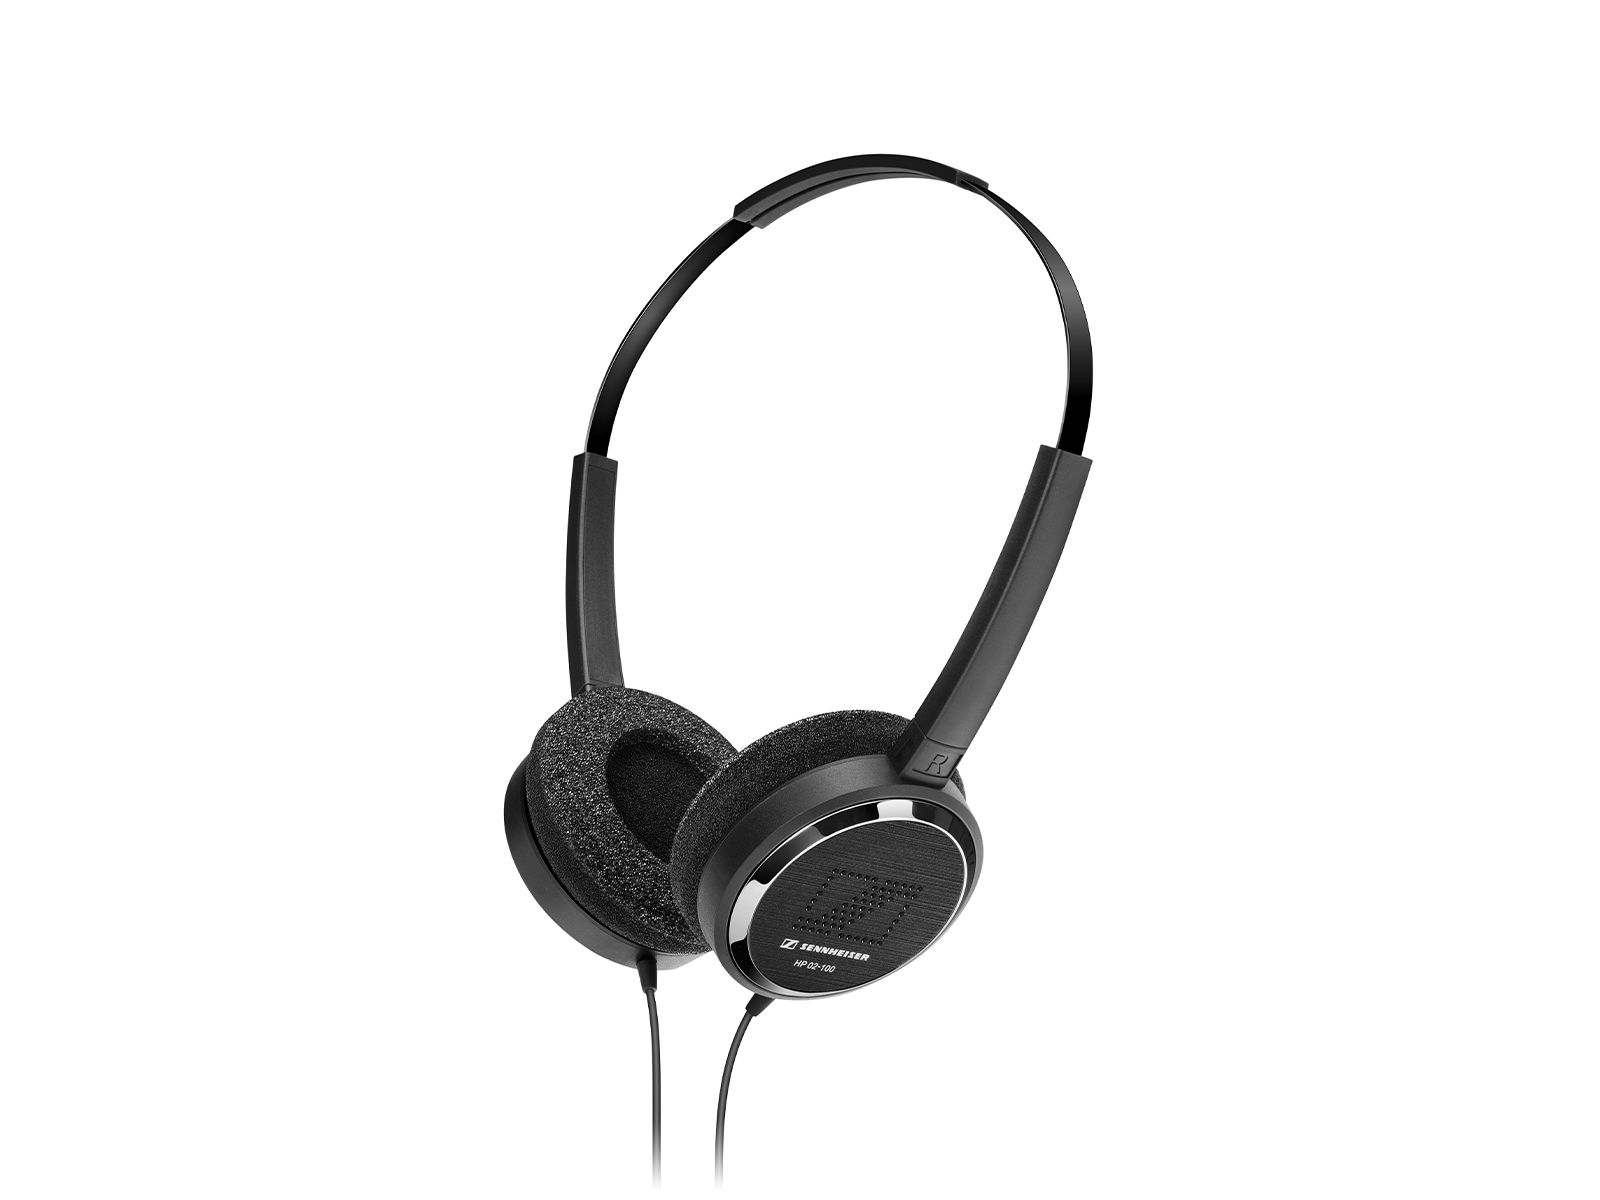 Sennheiser HP 02-140 | Kopfhörer, stereo, 32 Ω, Kabel 1,4 m, stereo,, 3,5 mm Klinkenstecker, gewinkelt, VE 20 Stk